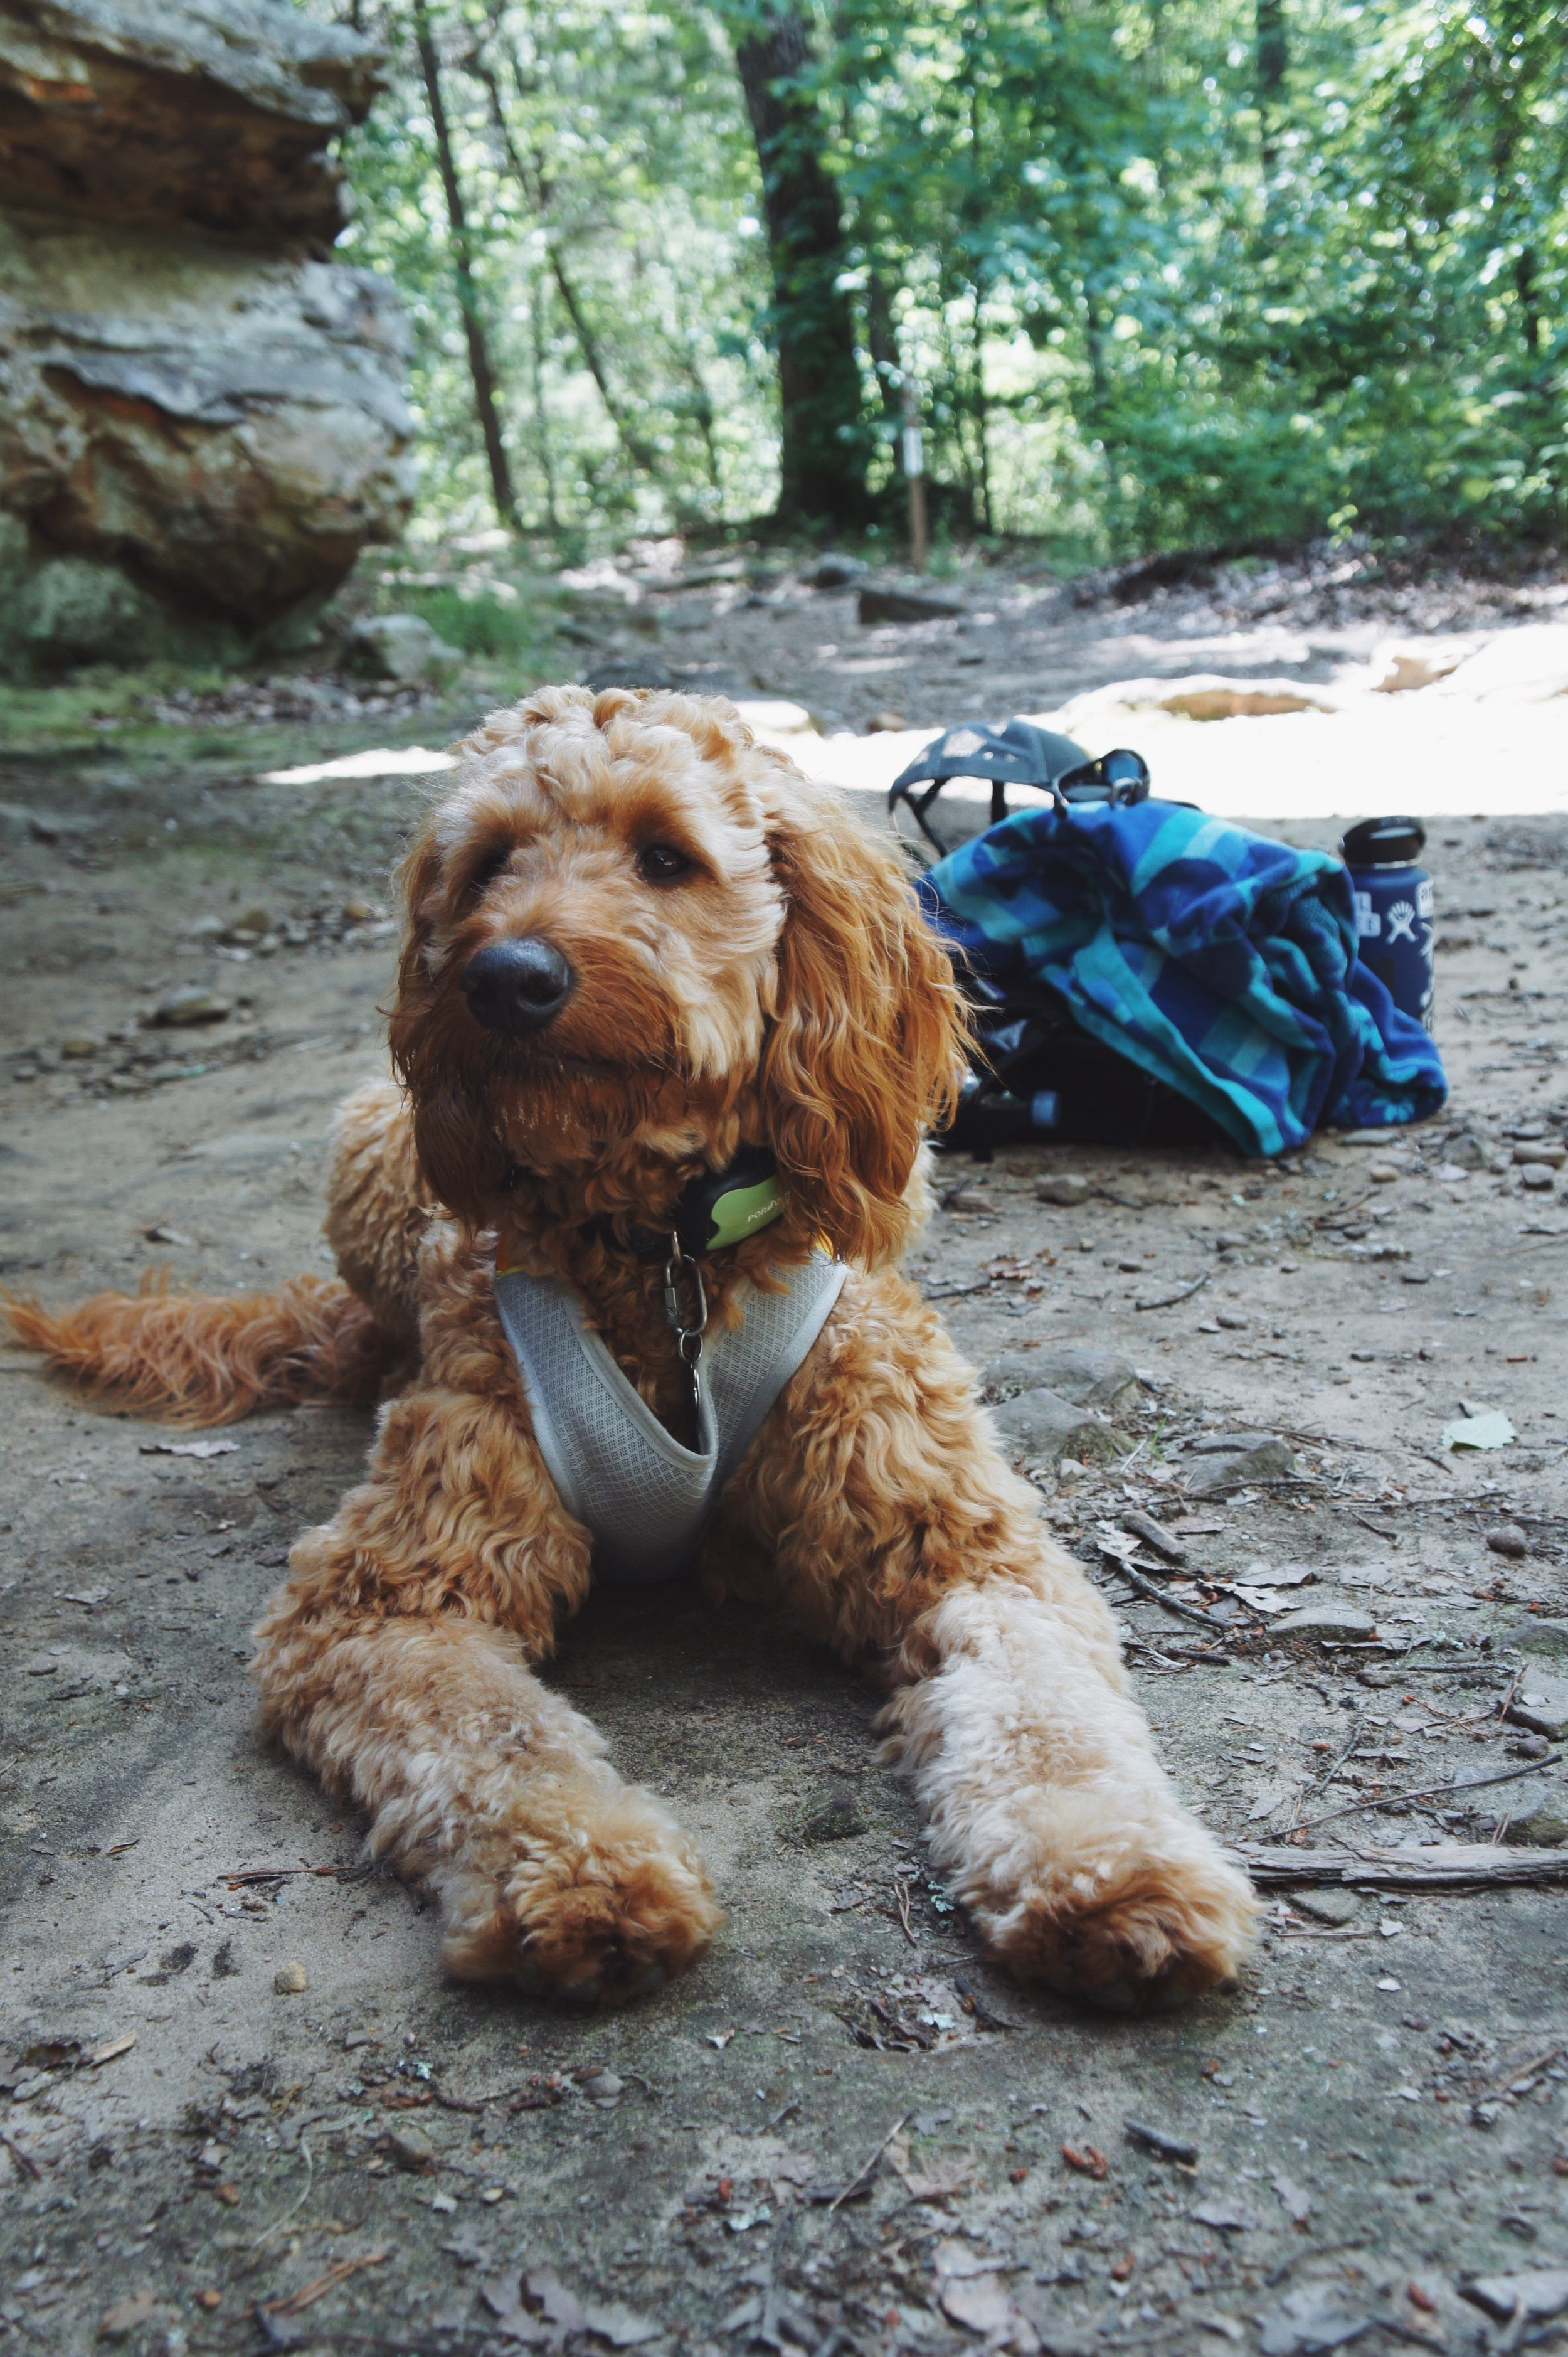 - When we get to the crag, we make sure to have travel food & water bowls for Romeo to eat and hydrate while we hang out, (as well as plenty of treats for when he's a good boy!)We also bring this vibrating dog collar with us whenever we travel. It works really well for Romeo— it beeps the first few times that he barks and if he barks too much it vibrates like a cell phone (never shocks). We usually don't even need to have batteries in it and it works as a placebo and keeps him calm (which he needs to be when people are climbing!)